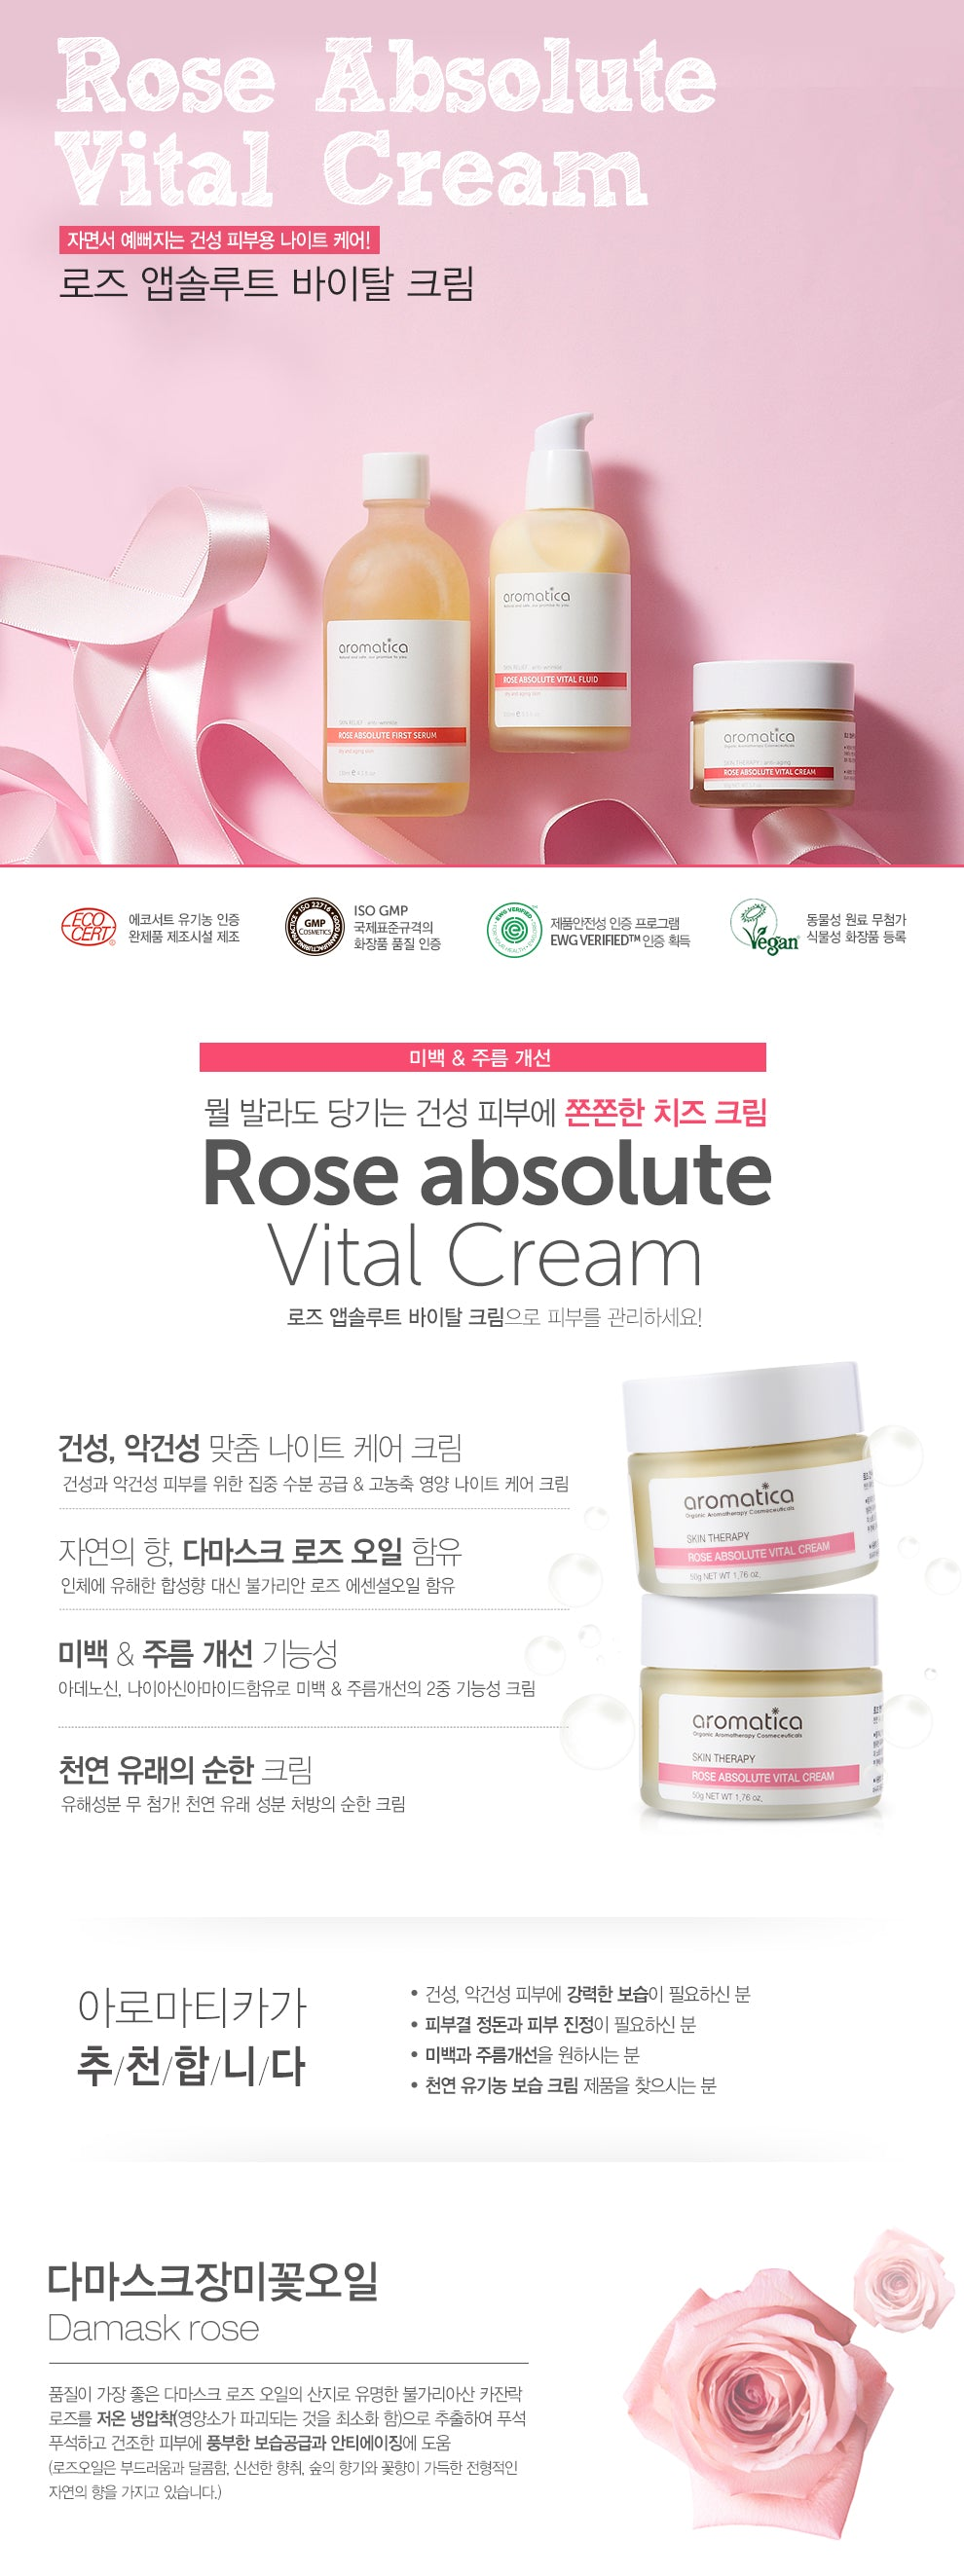 Aromatica - Rose Absolute Vital Cream